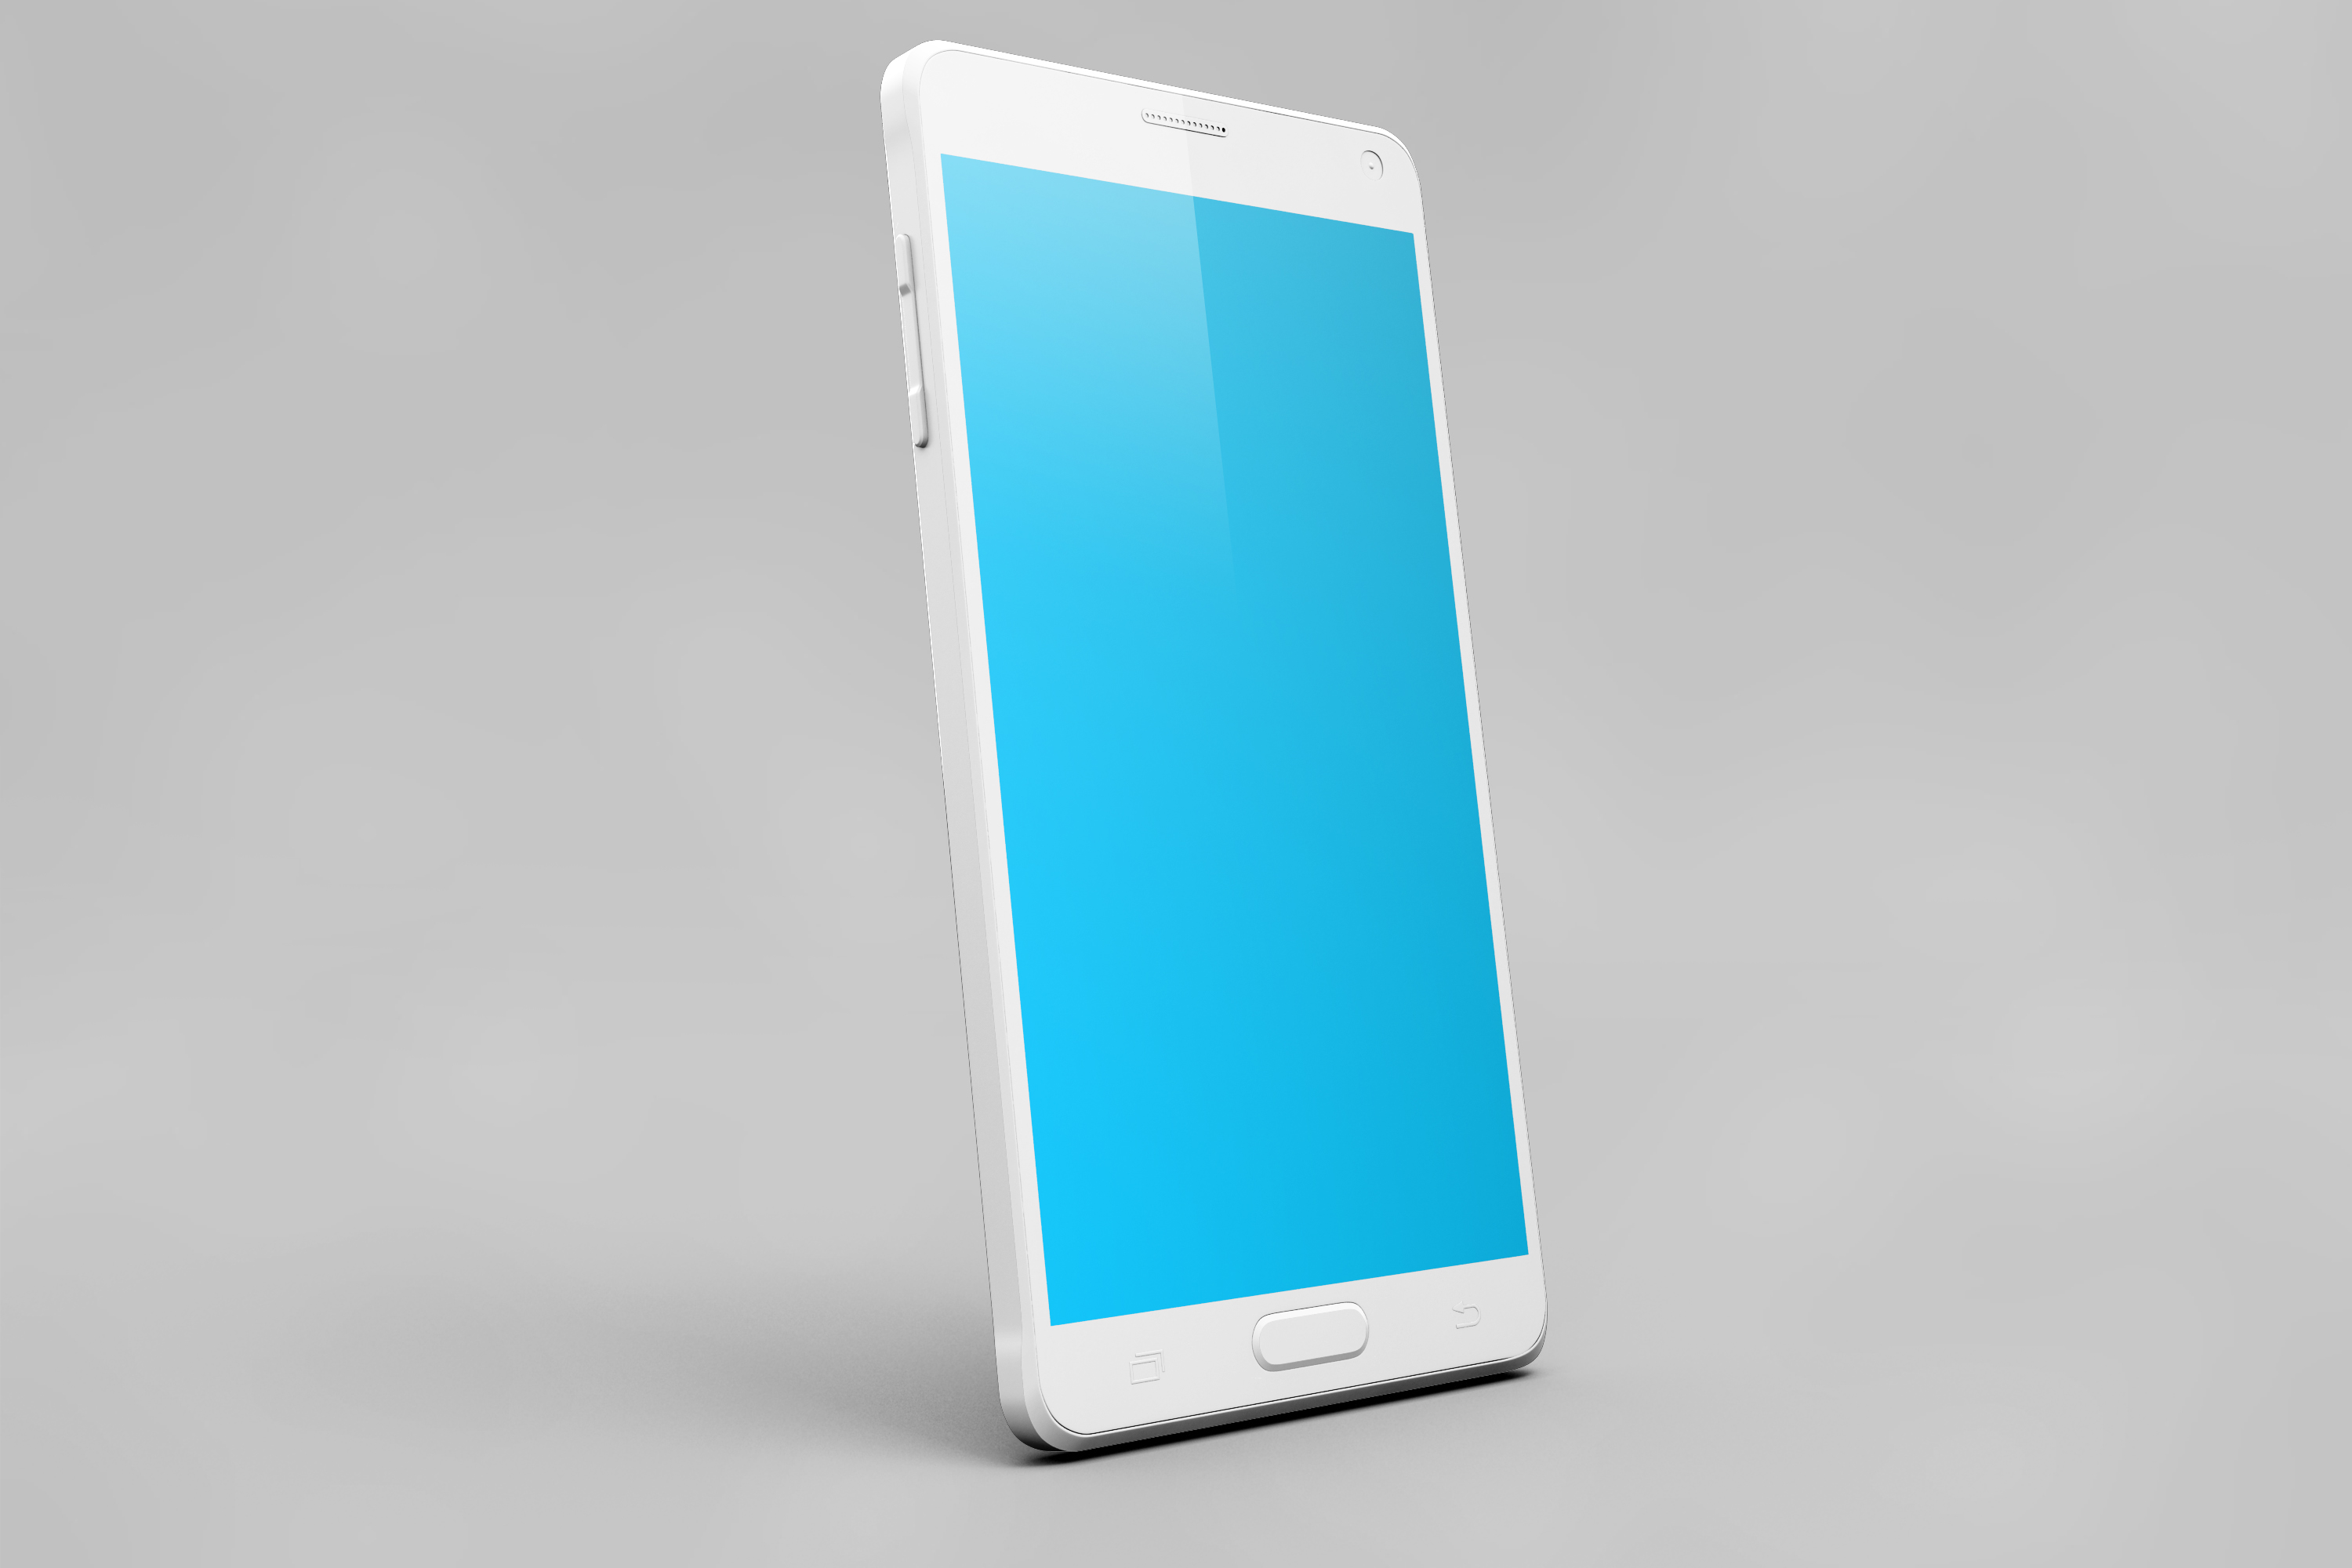 Samsung Galaxy Note 4 Mock-up example image 10